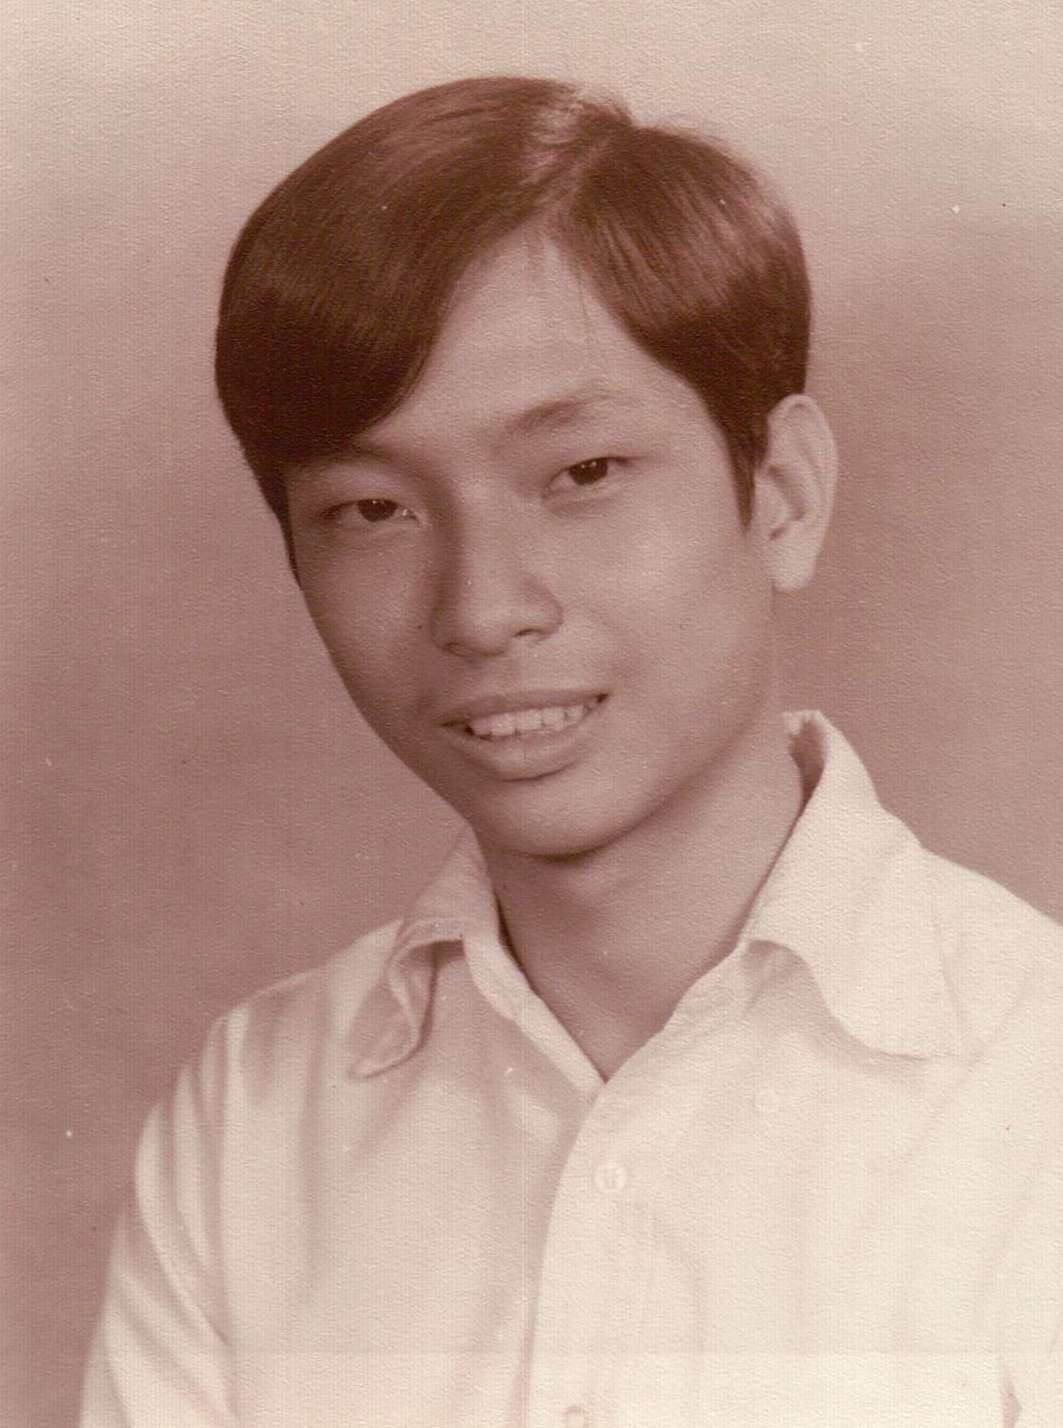 Pastor Vince's high school year book photo.